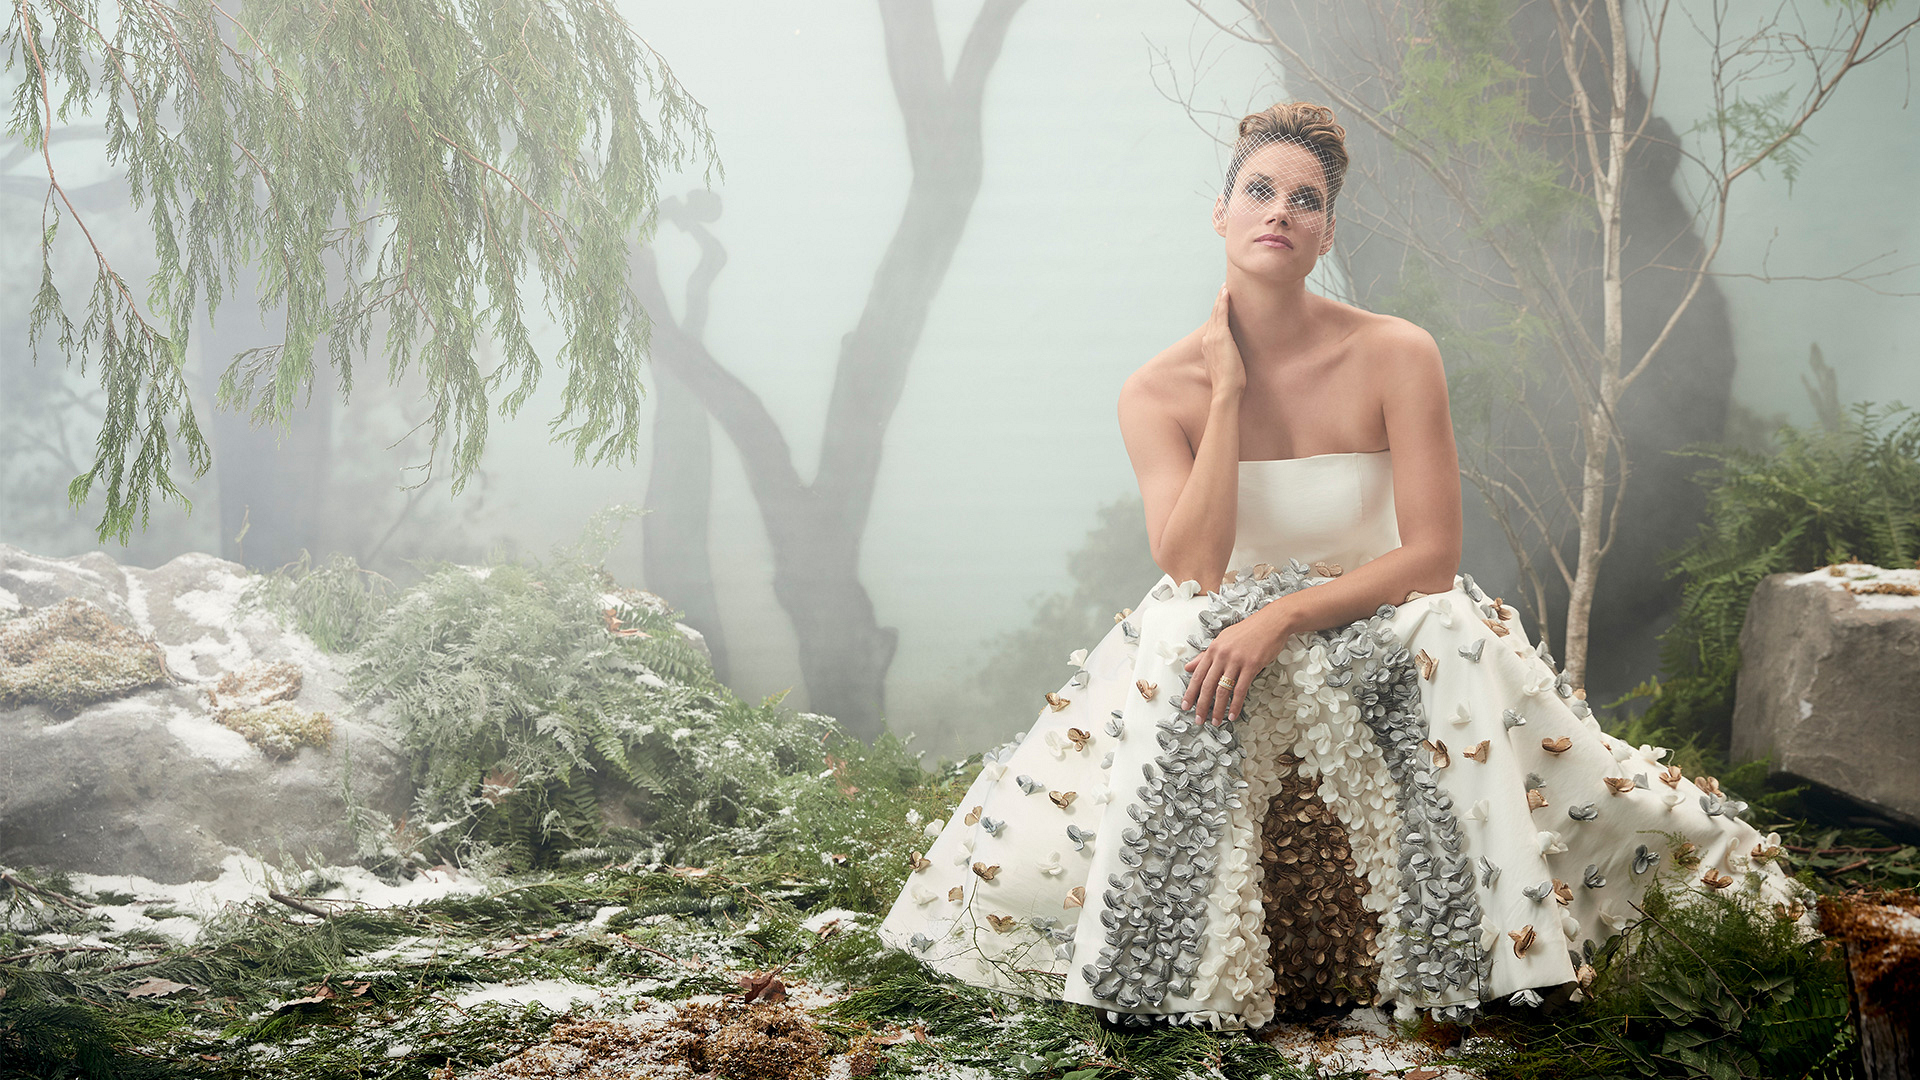 Missy Peregrym goes glam for a winter fashion shoot, and the results are magical